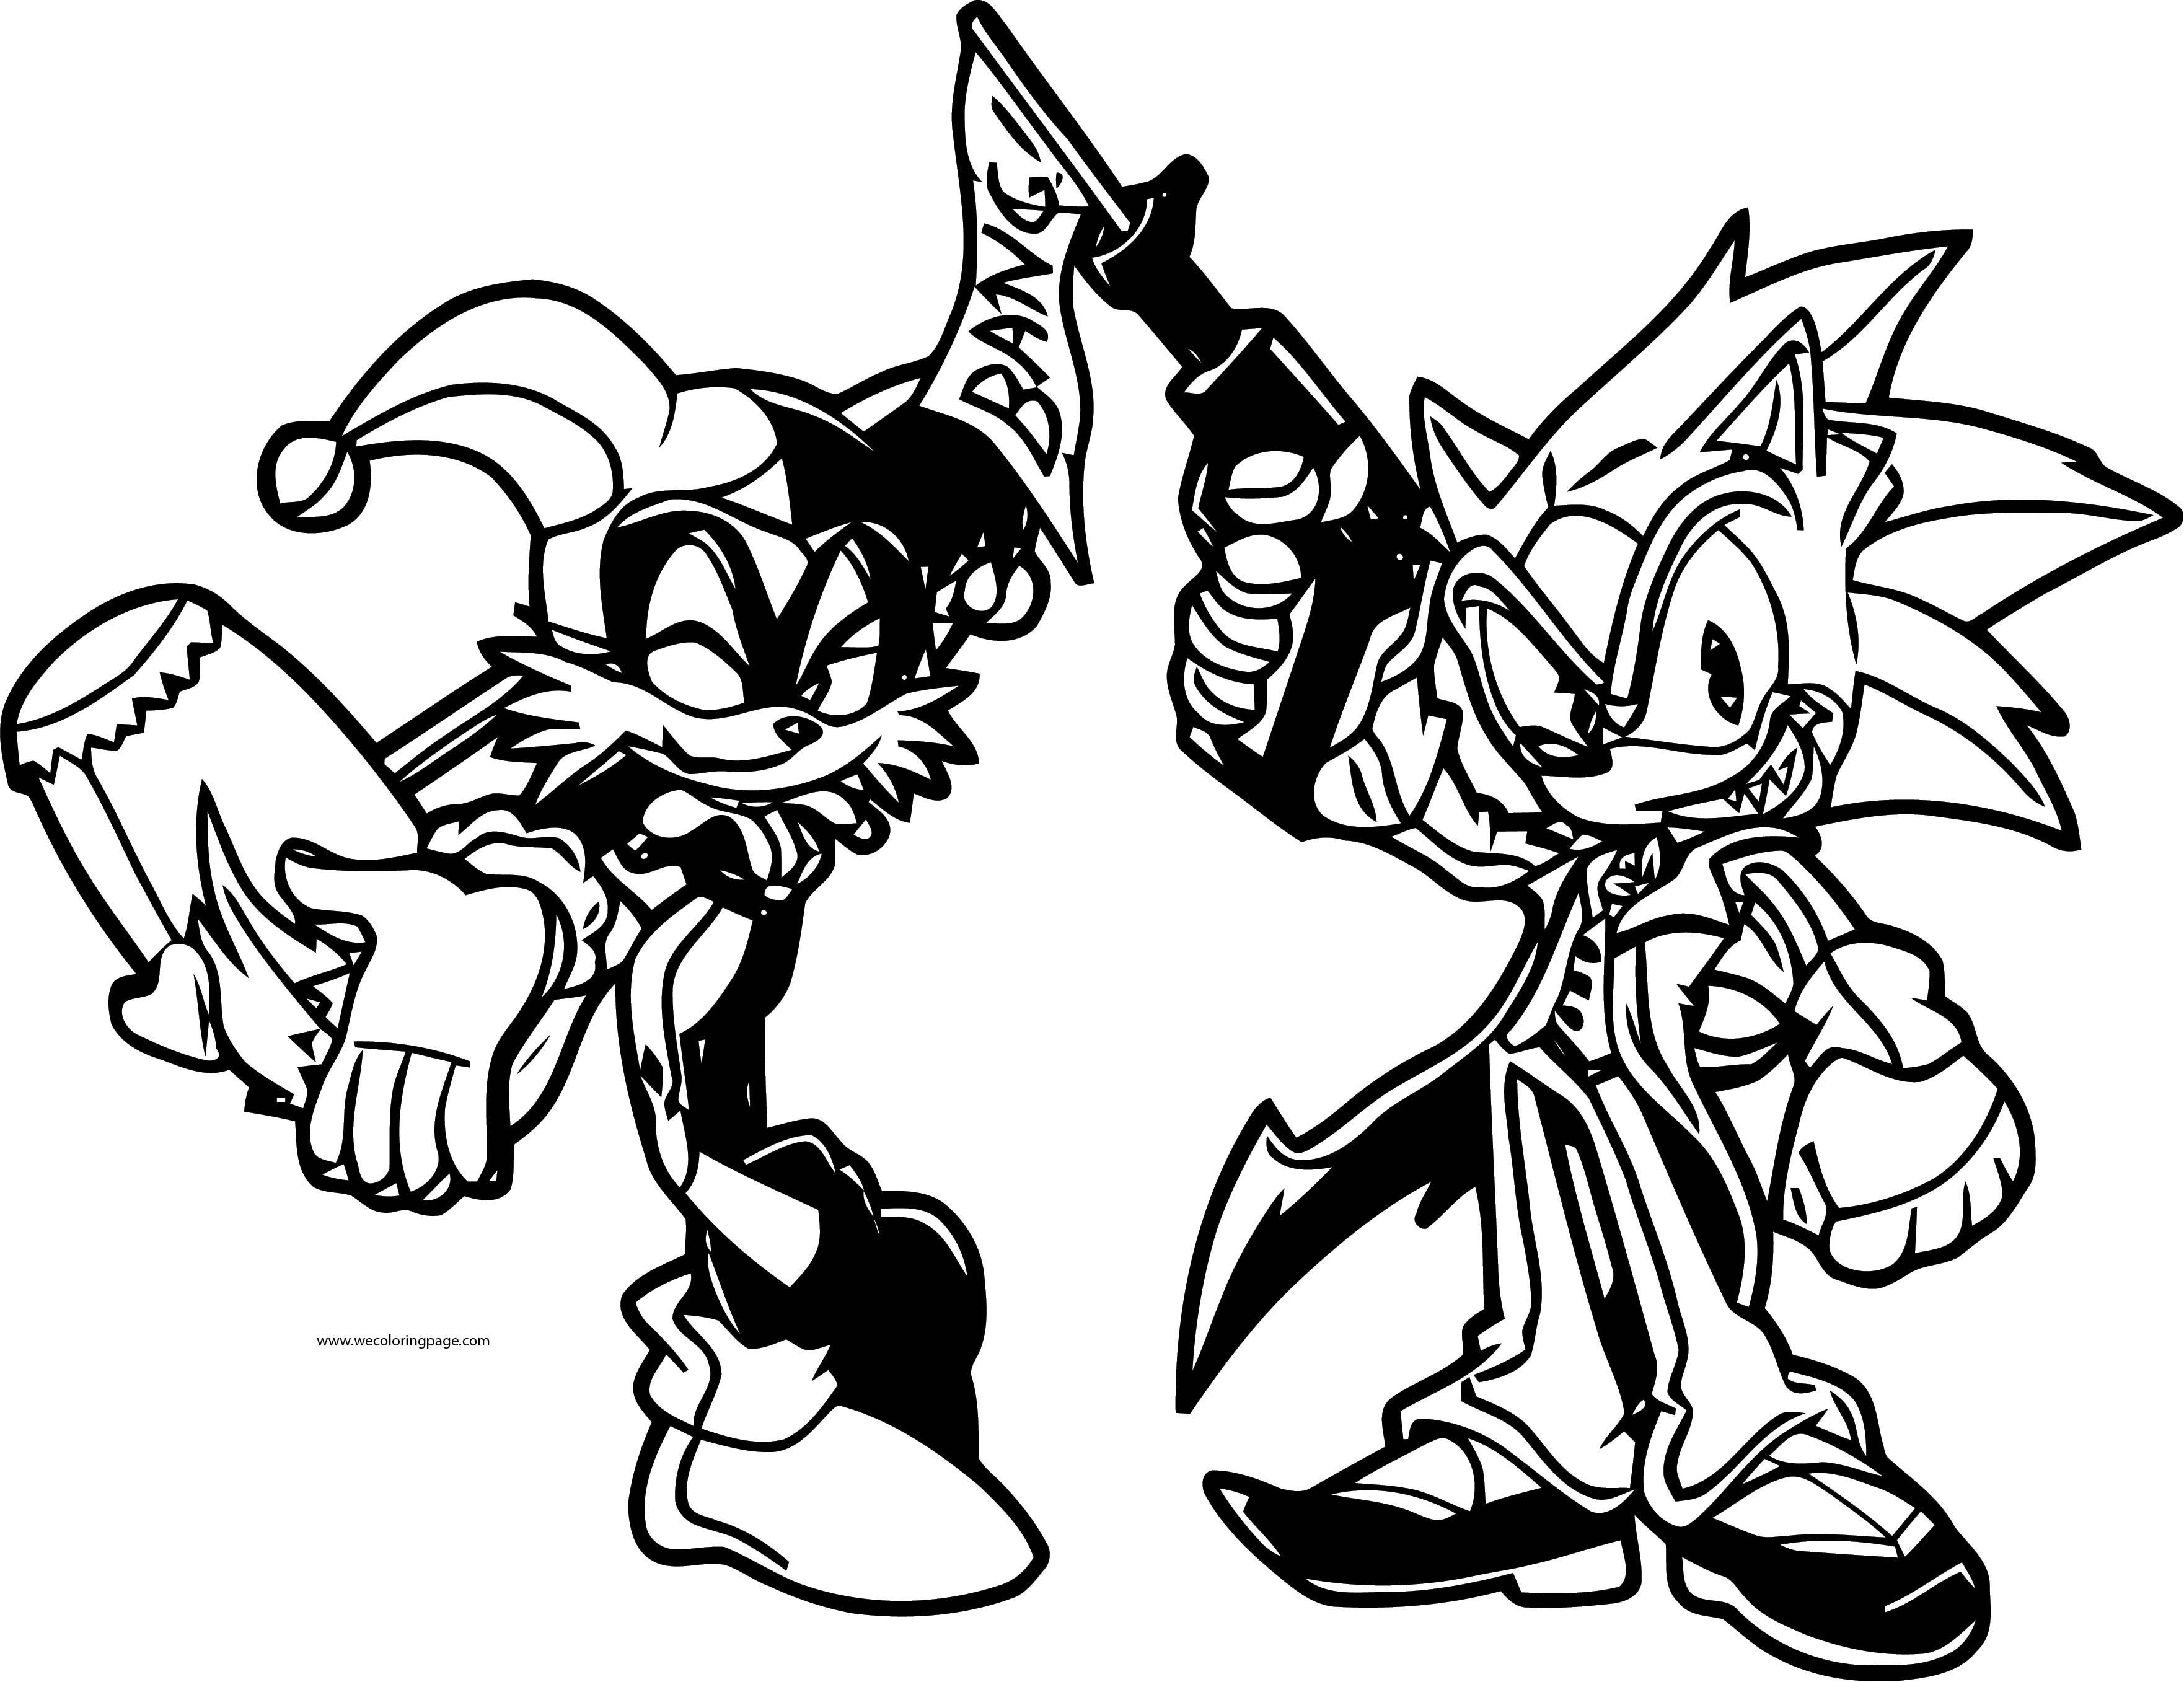 Joke Sonic The Hedgehog And Crown Girl Coloring Page